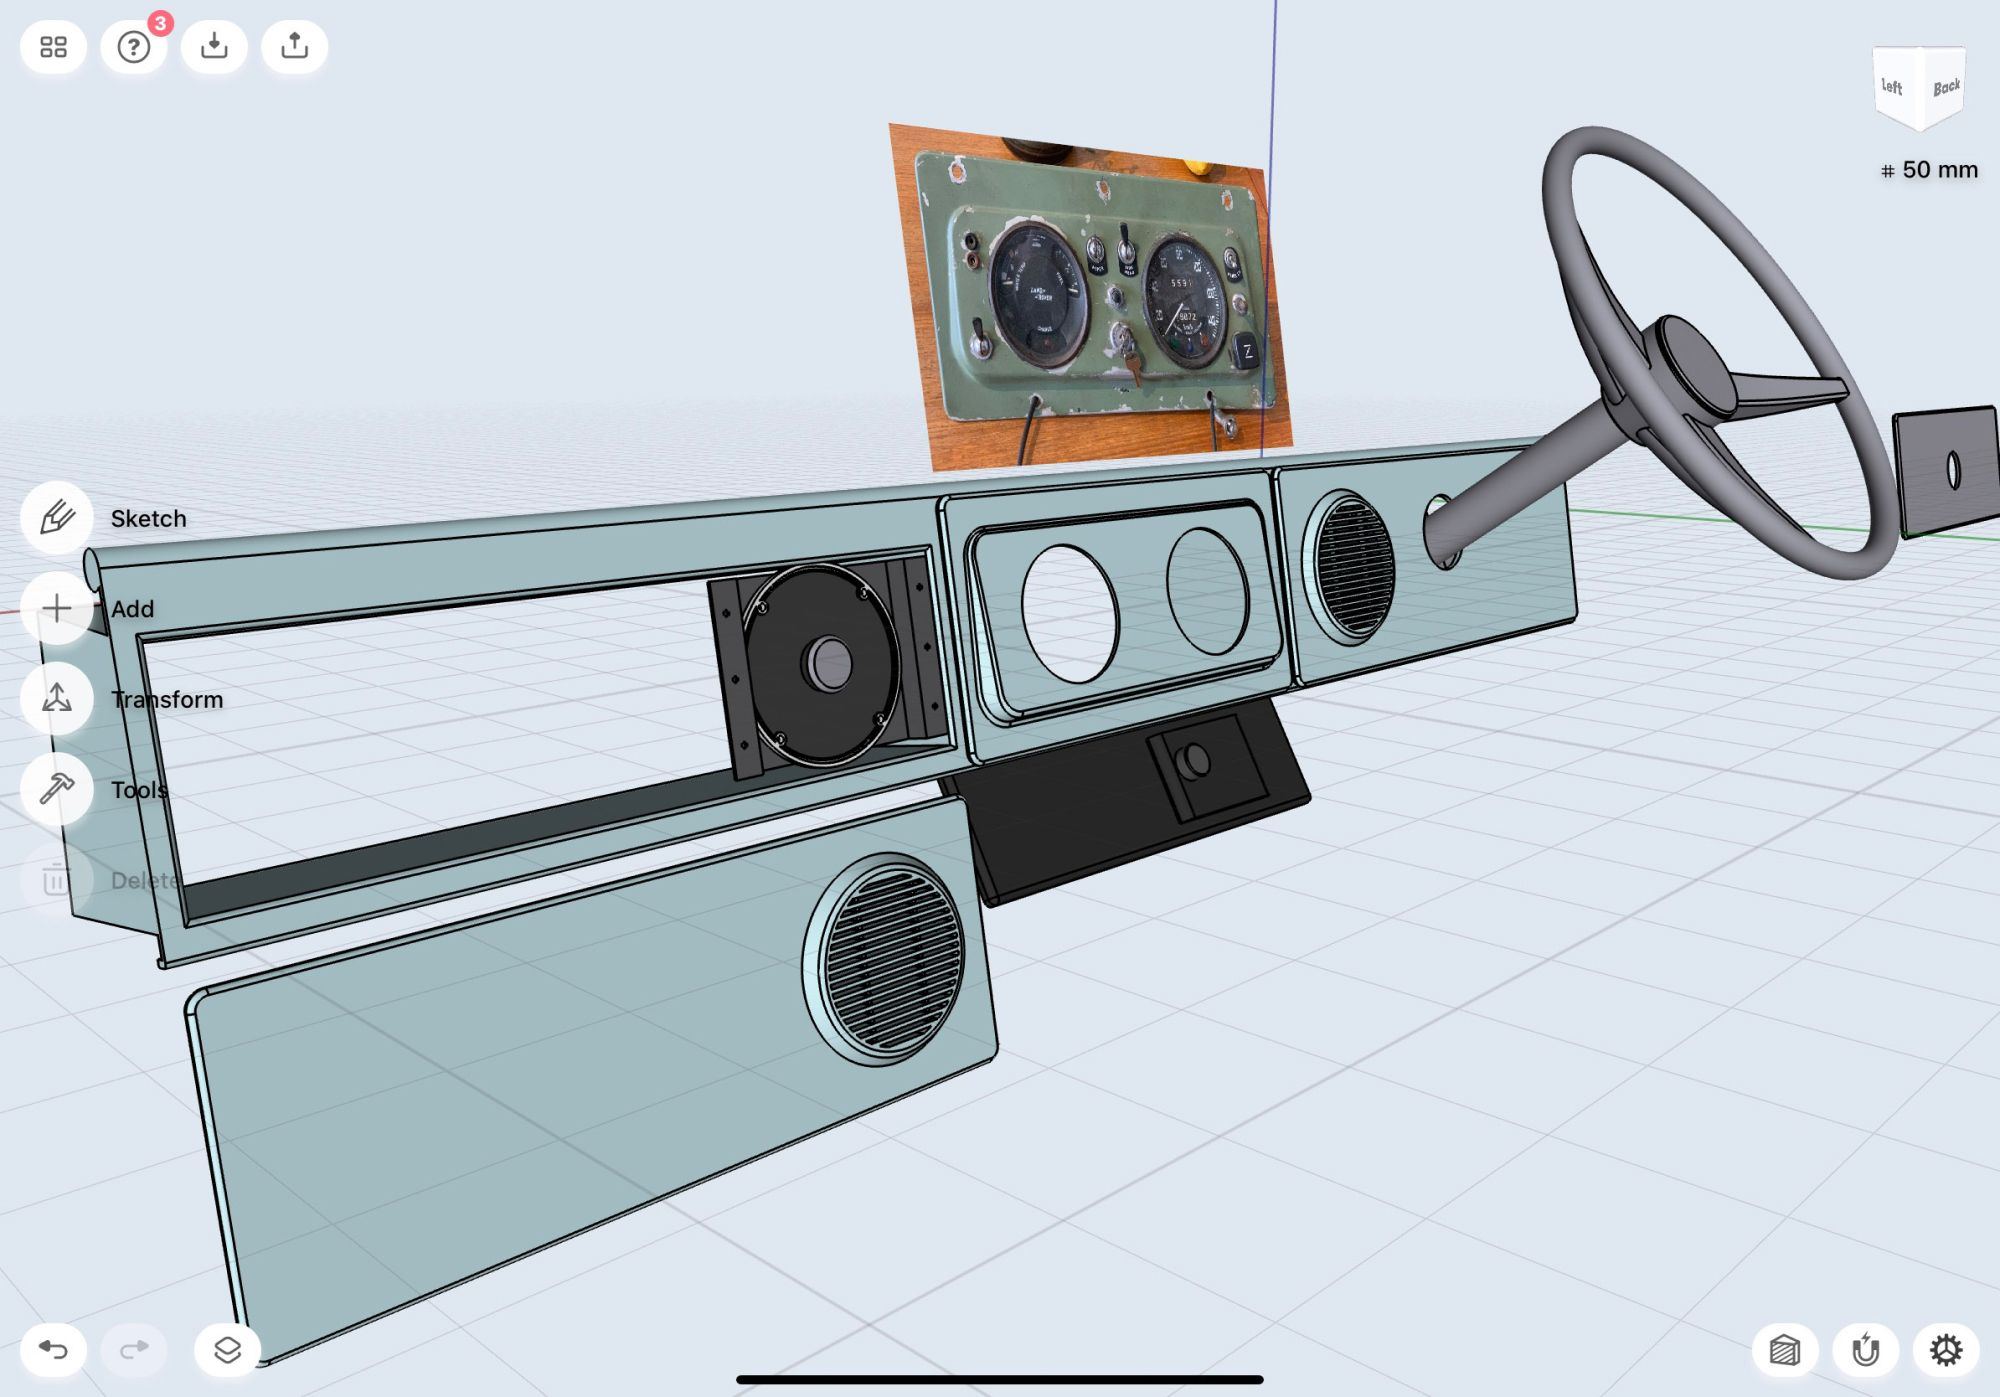 3D model of a Land Rover dashboard in Shapr3D